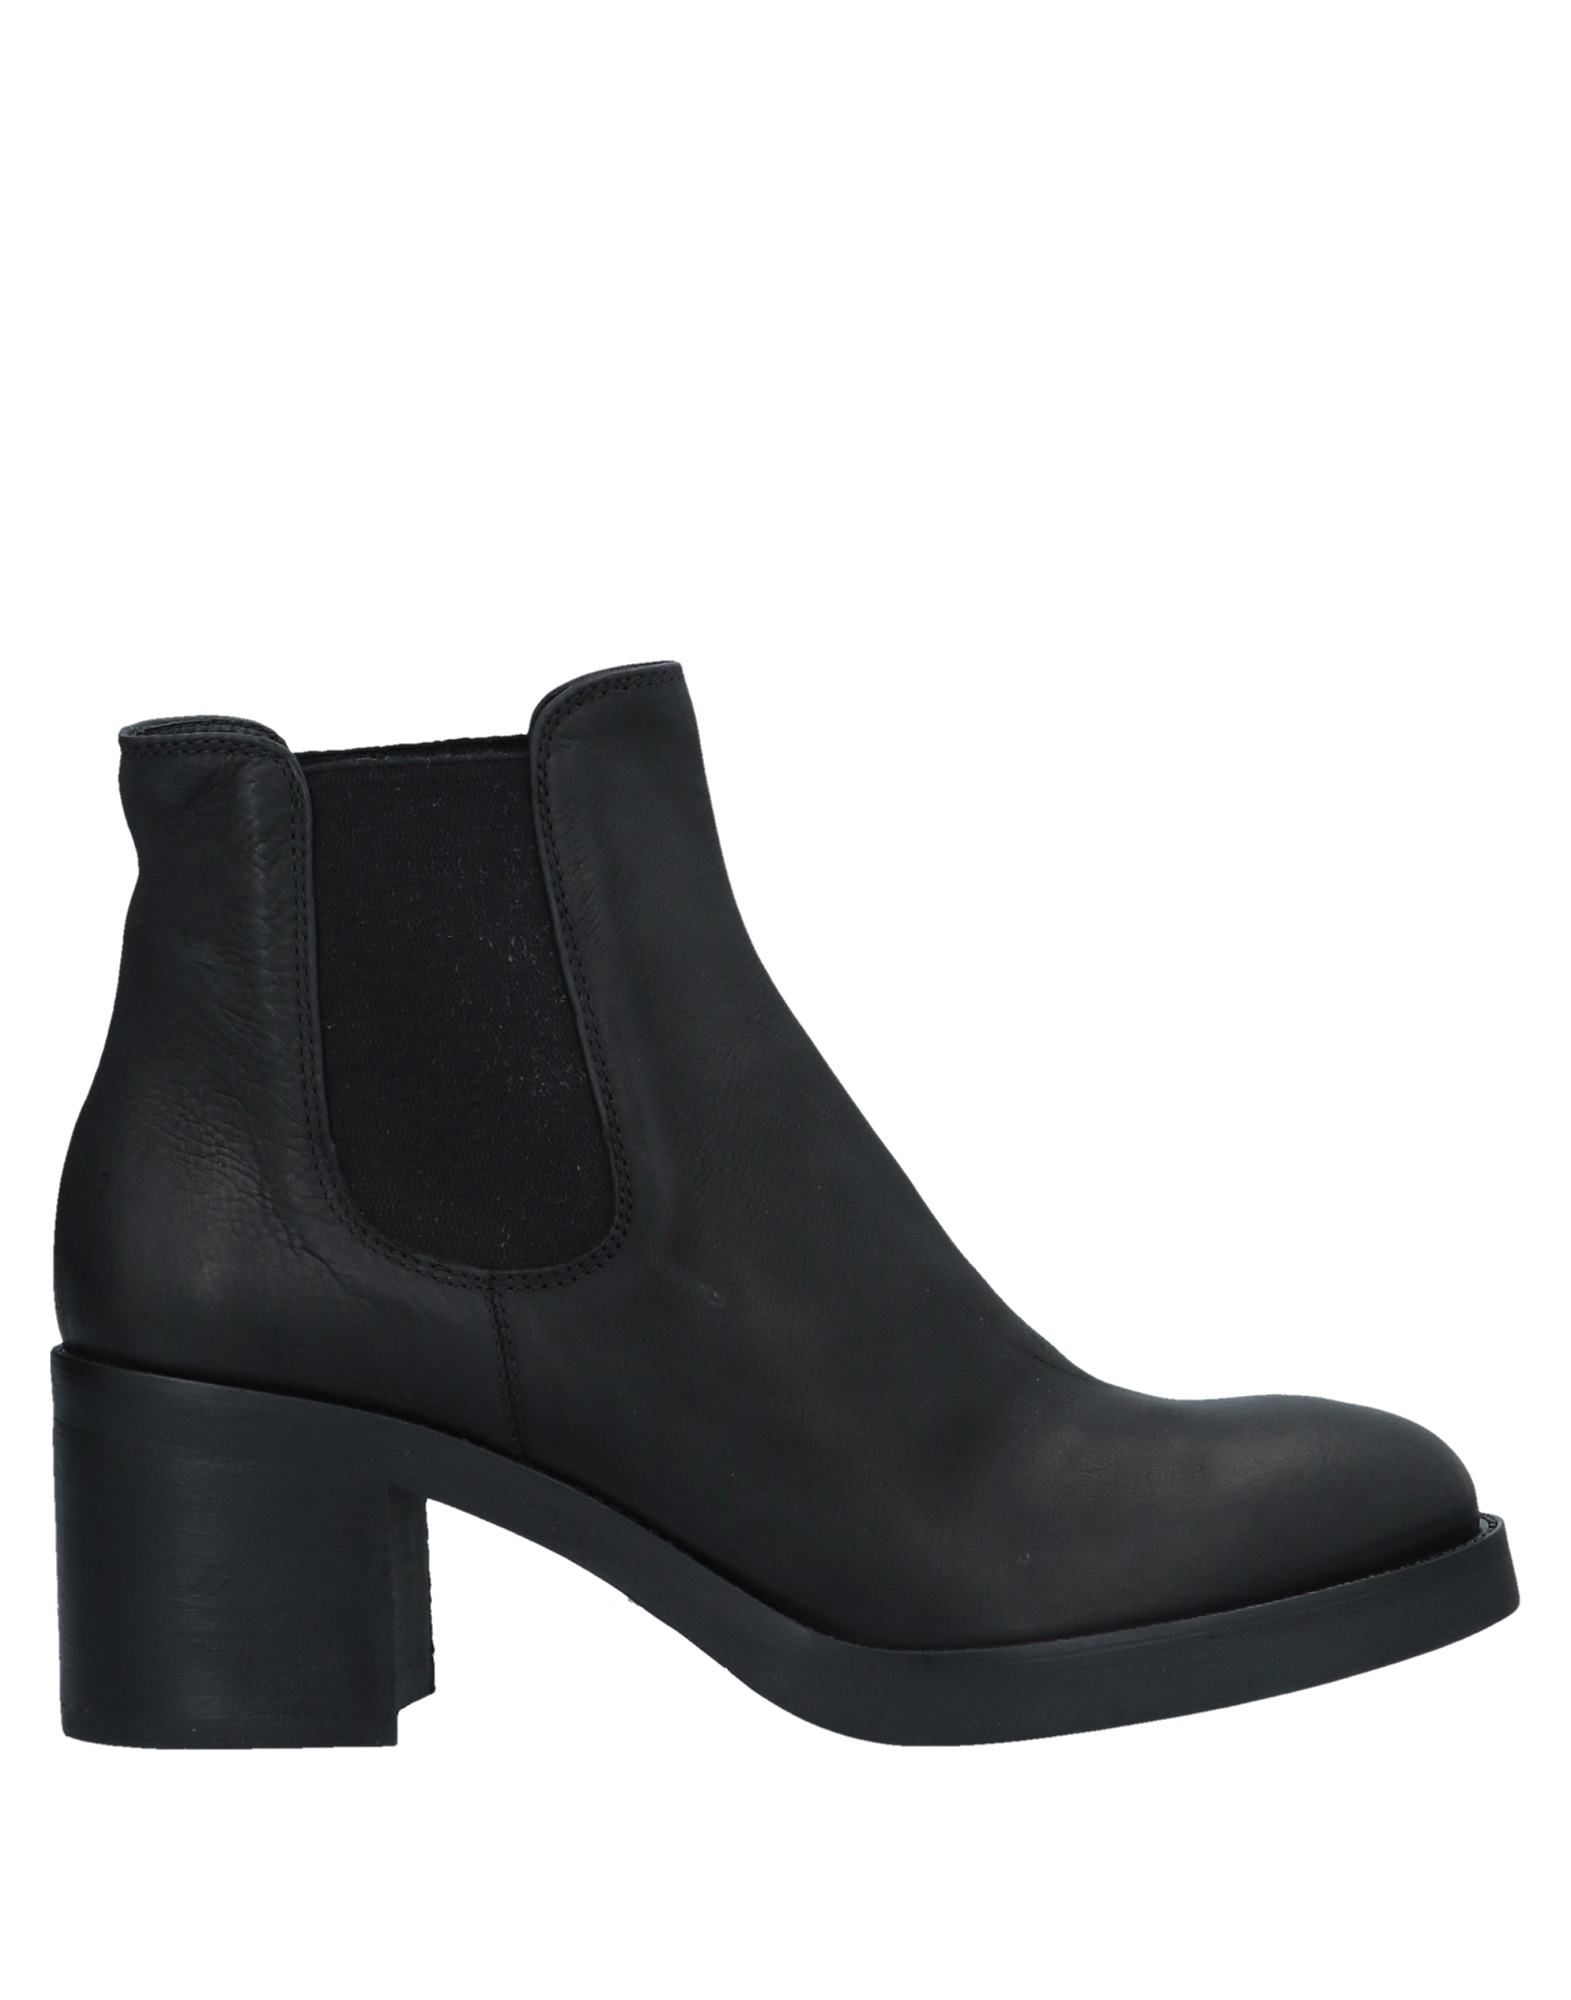 Fru.It 11532792VV Chelsea Boots Damen  11532792VV Fru.It f8d76d